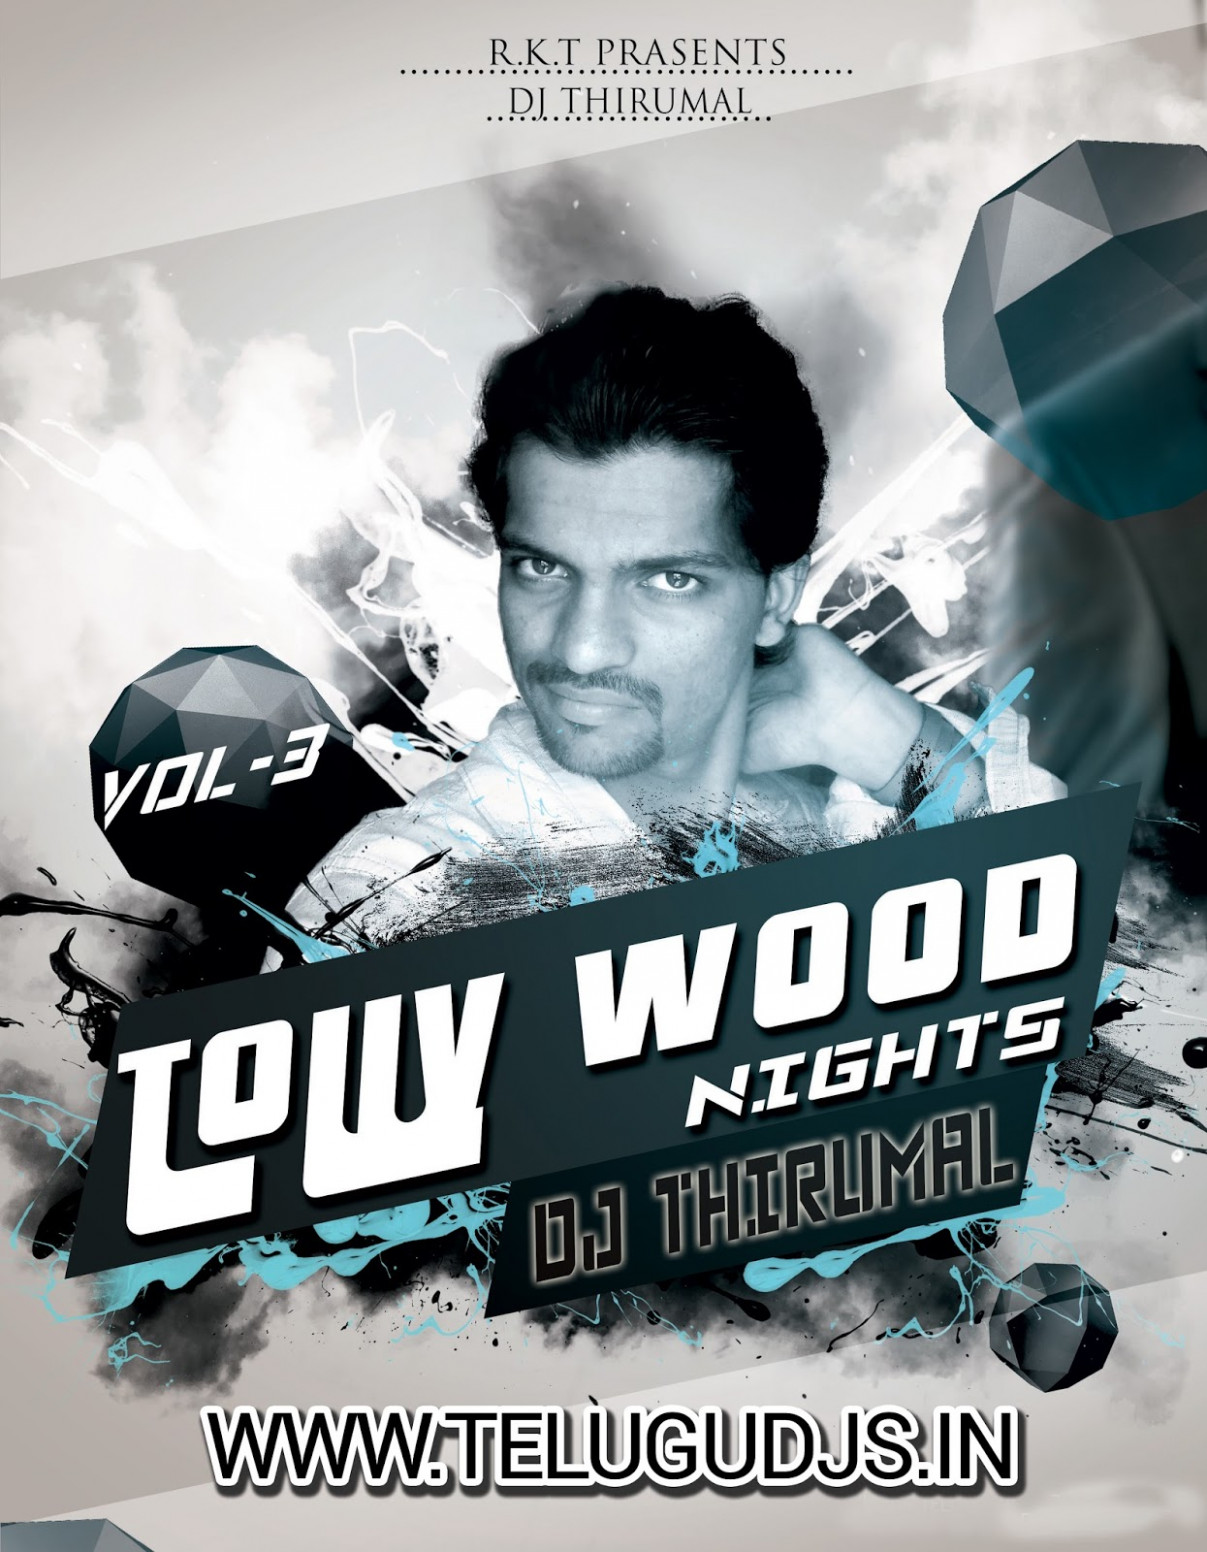 Tollywood Nights Dj Thirumal - Telugudjs.in-Download Best ...